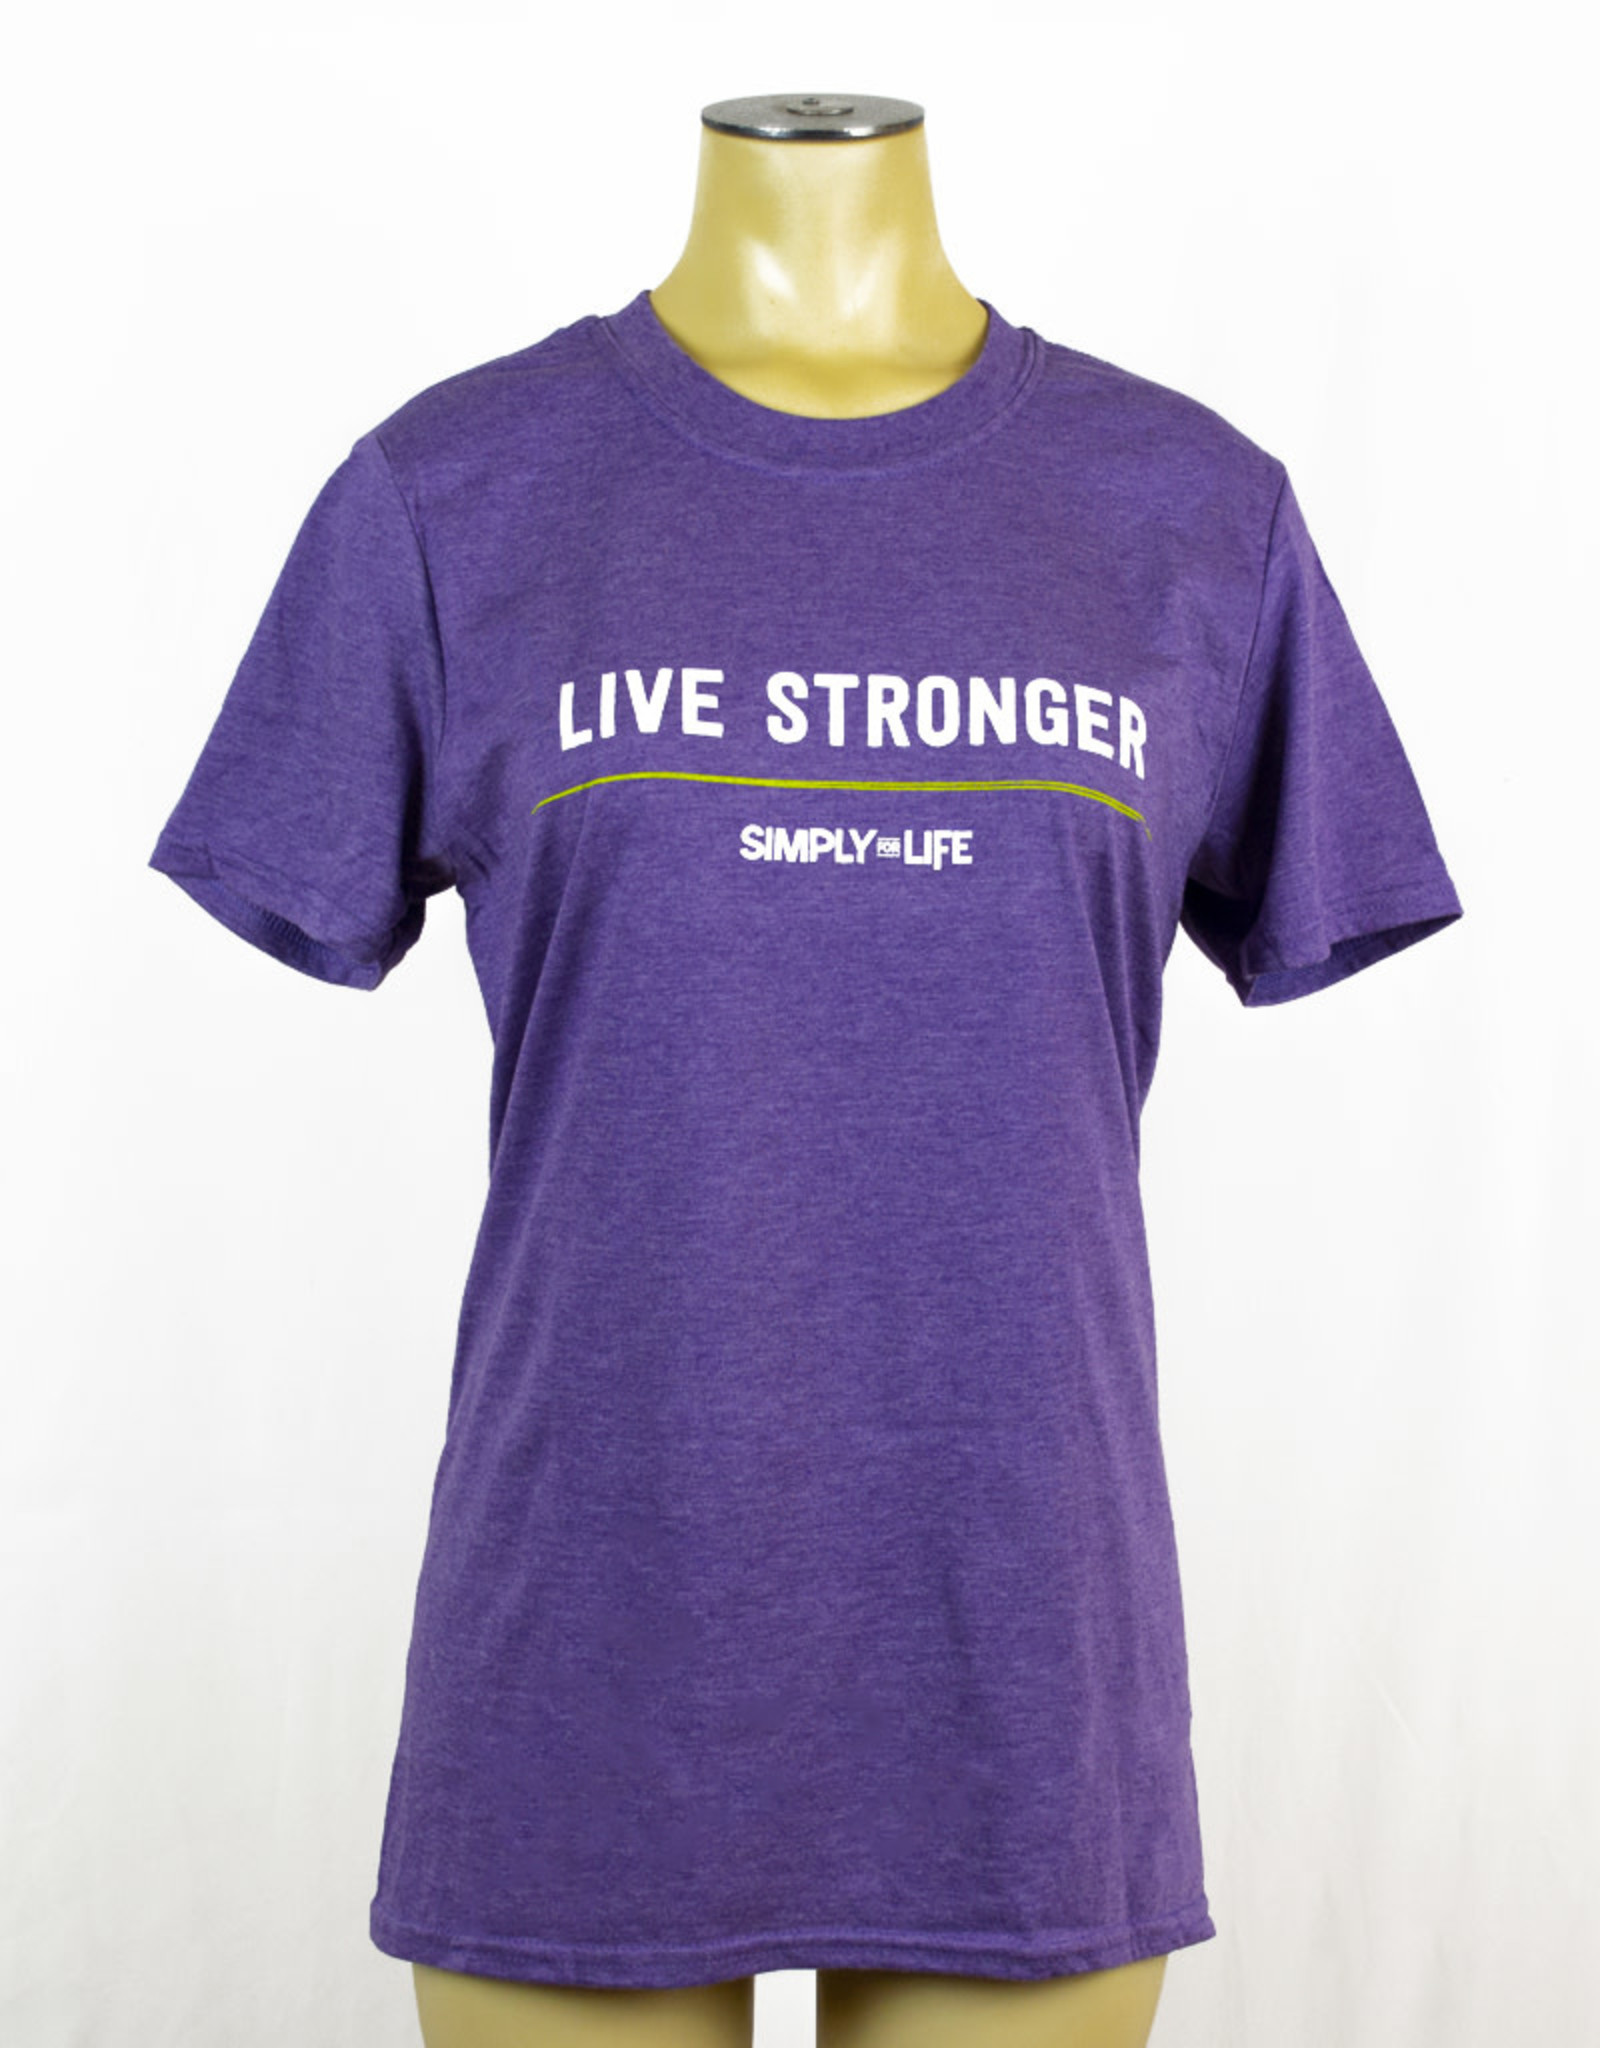 Simply For Life T-Shirt Crewneck - Live Stronger